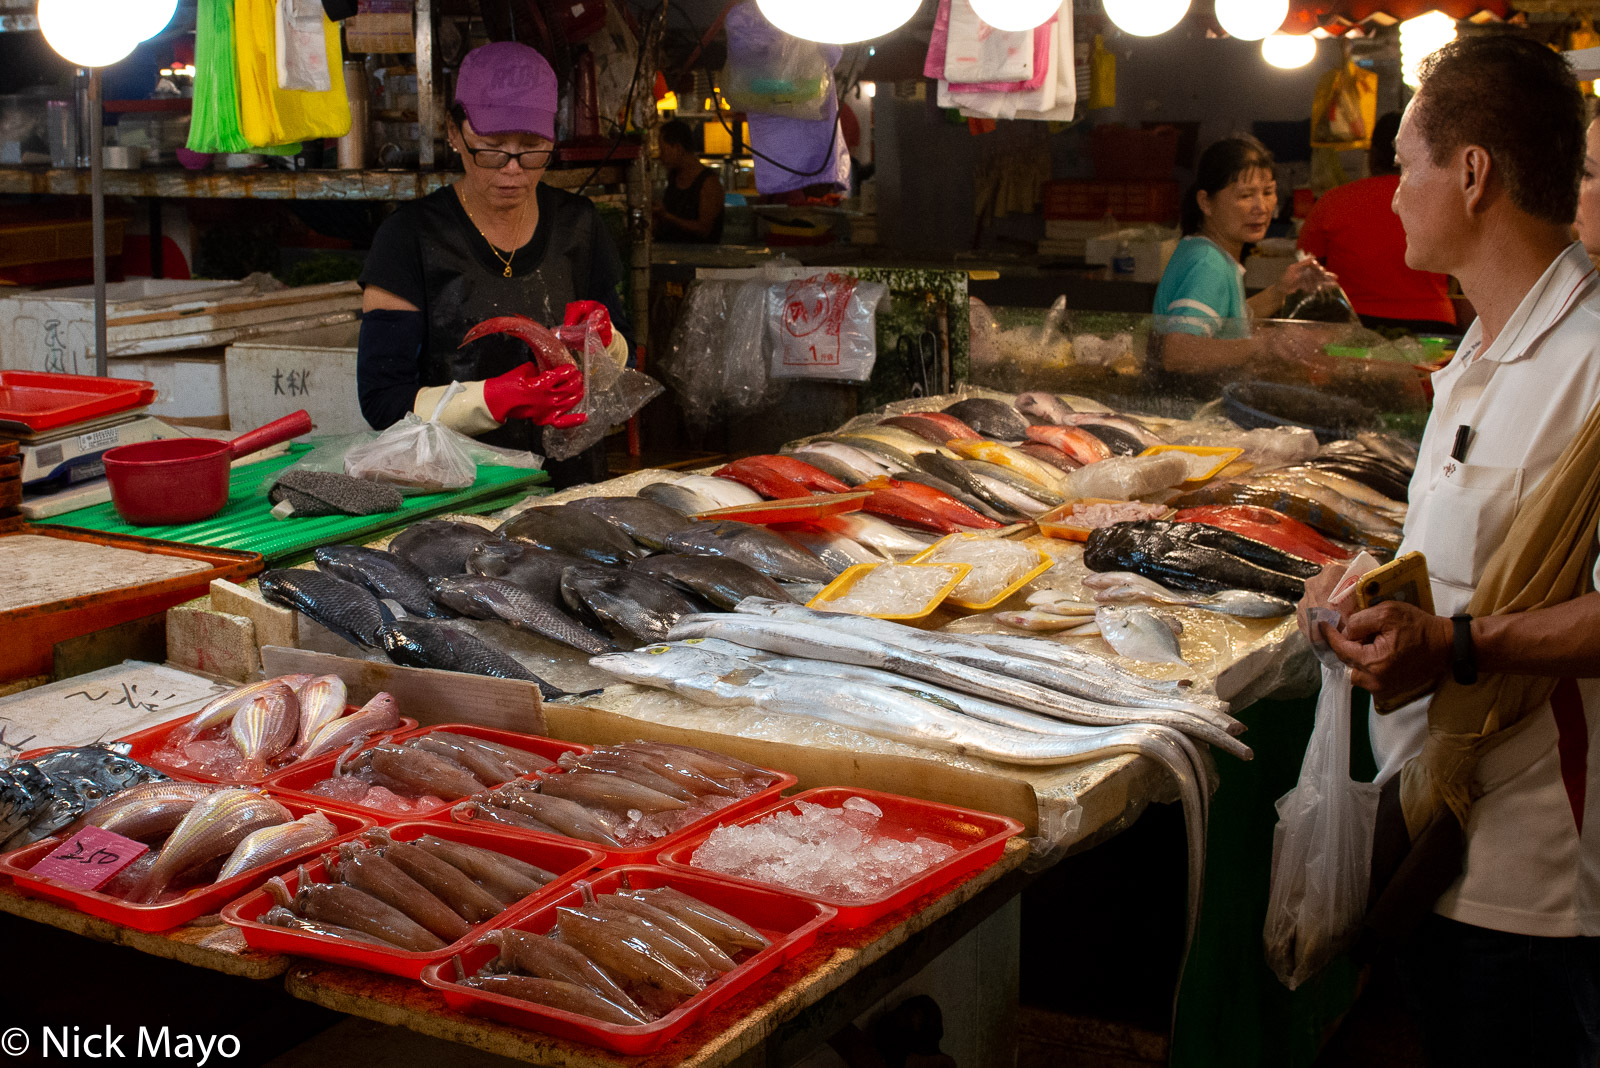 Market, Selling, South, Taiwan, photo